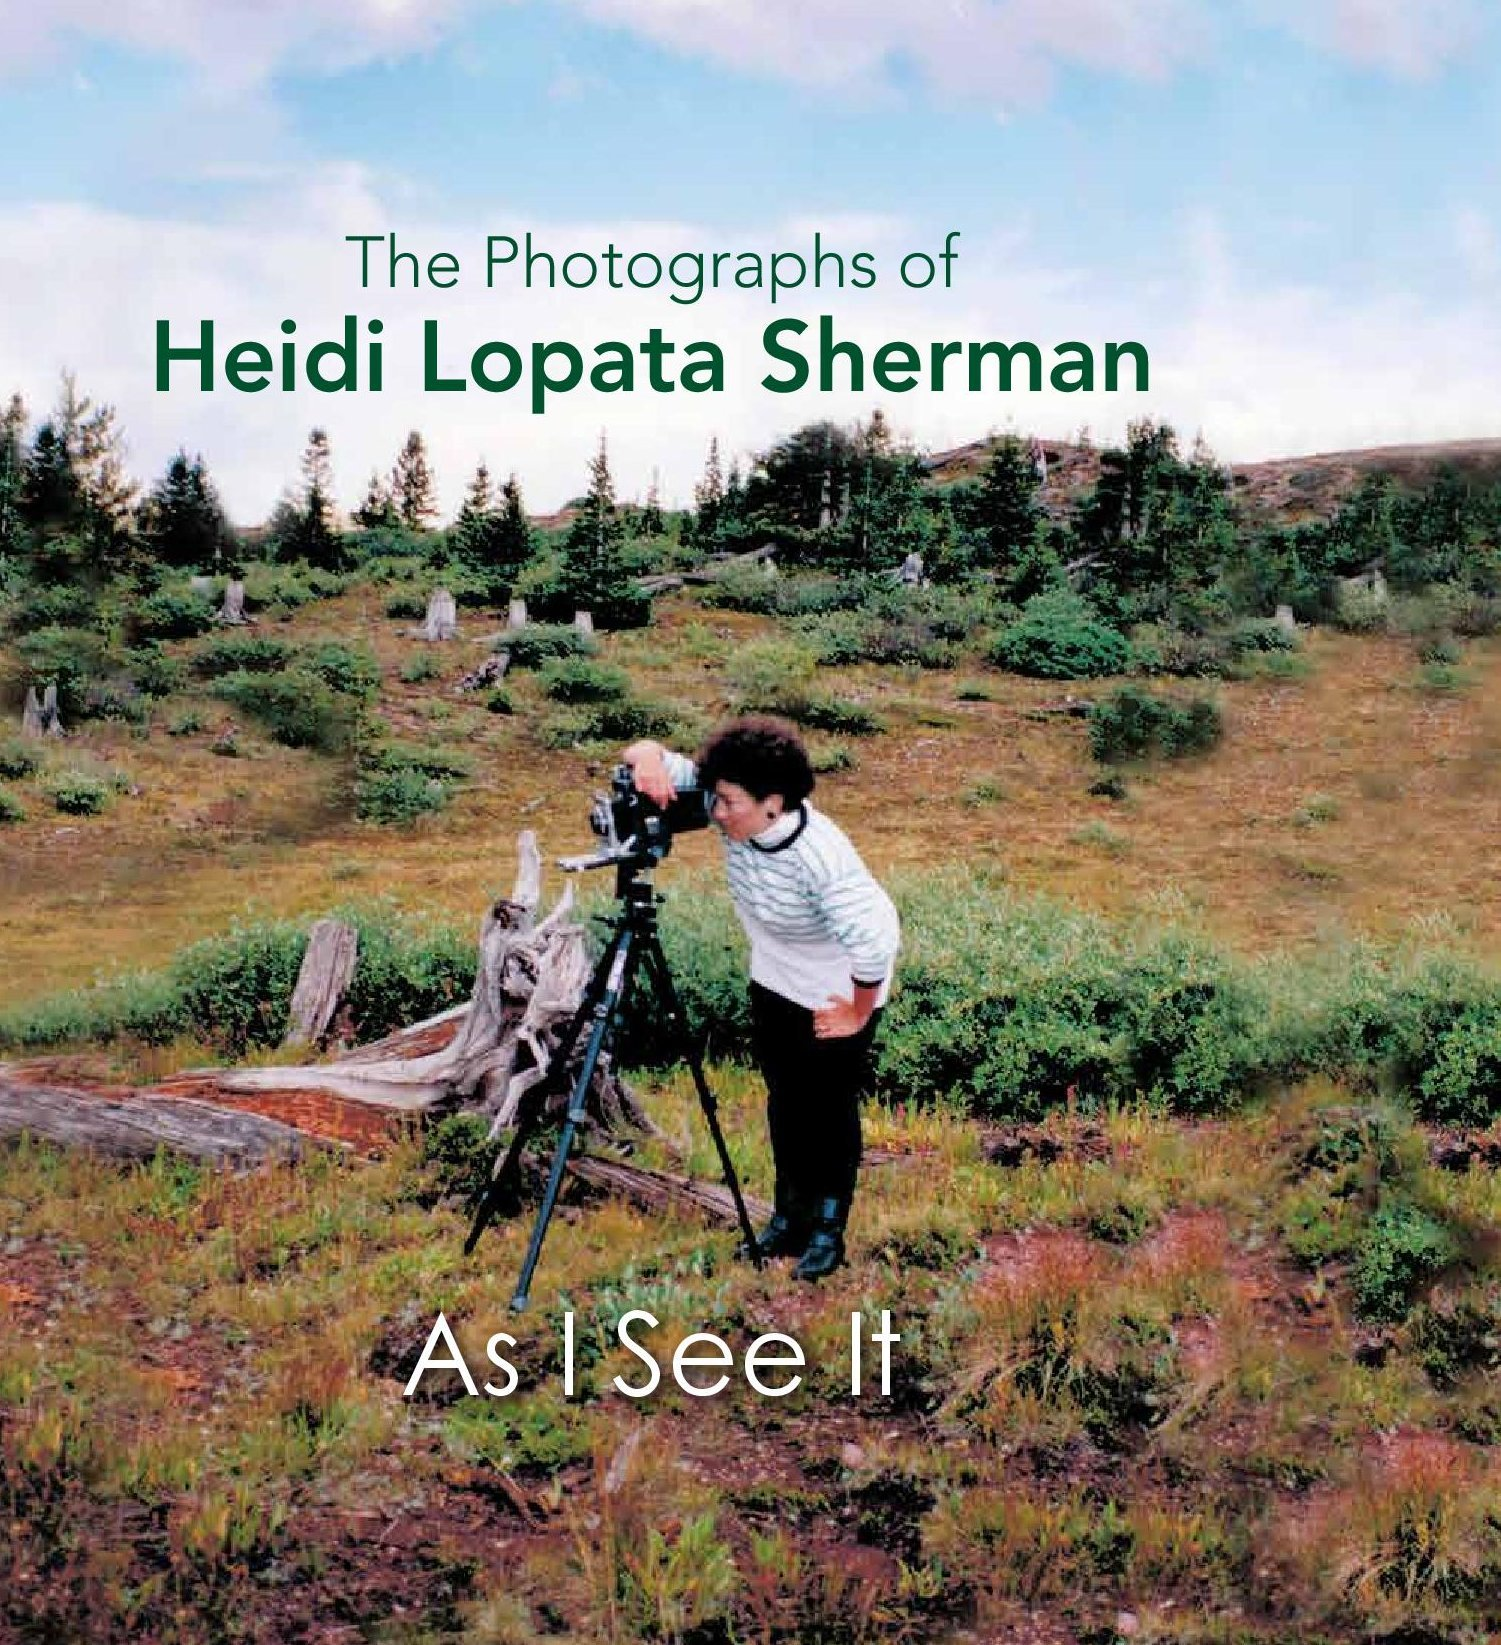 As I See It: The Photographs of Heidi Lopata Sherman PDF